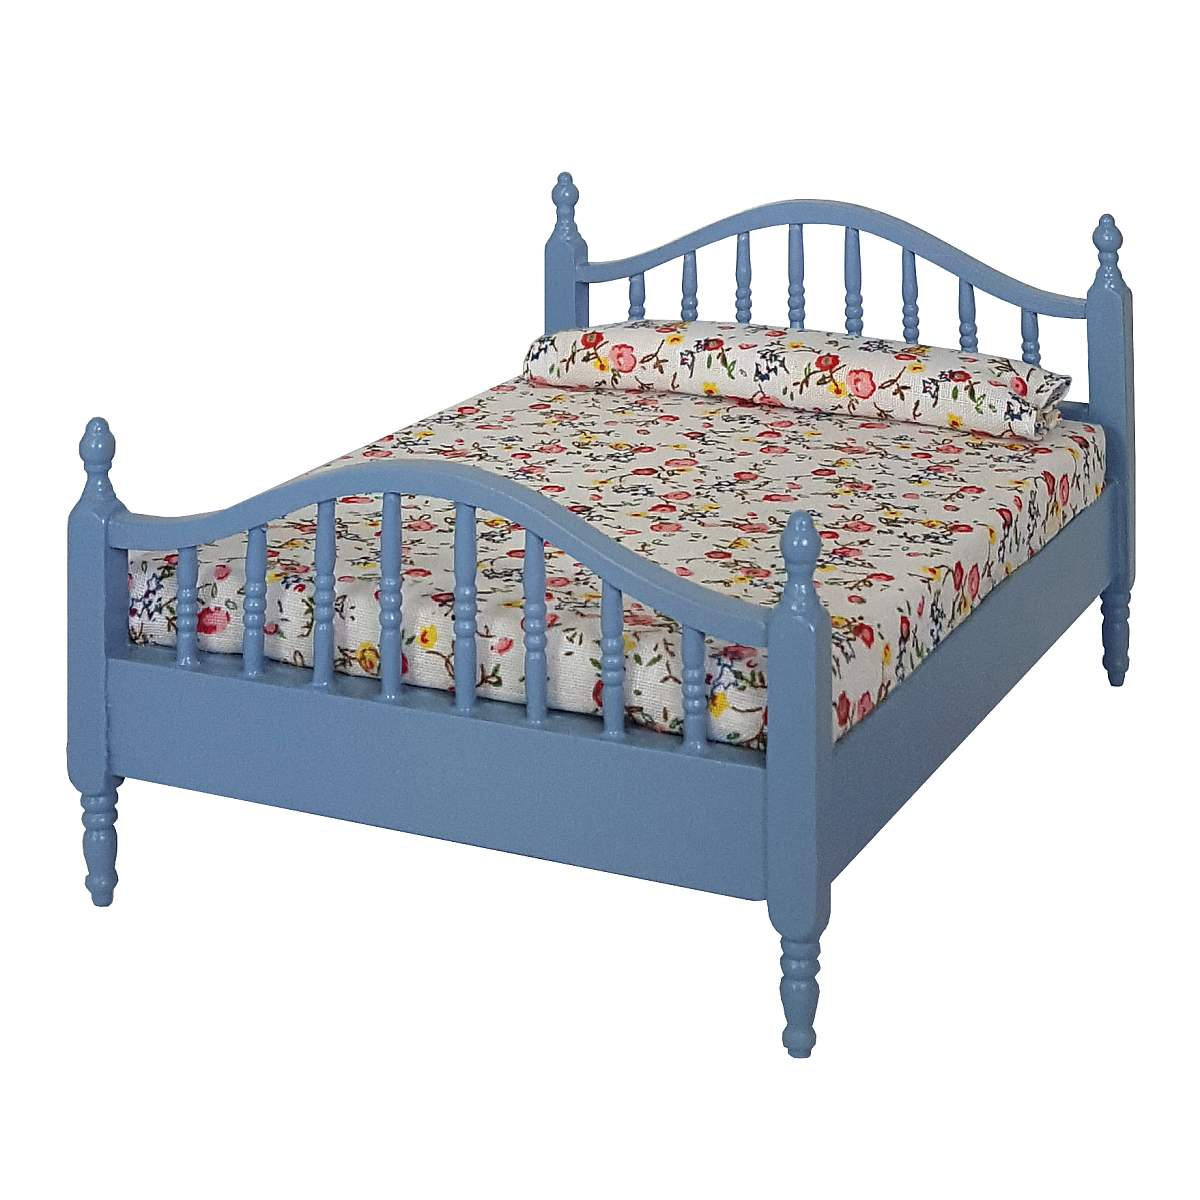 Double bed, blue, with floral duvet cover 完成品・ダブルベッド ブルー